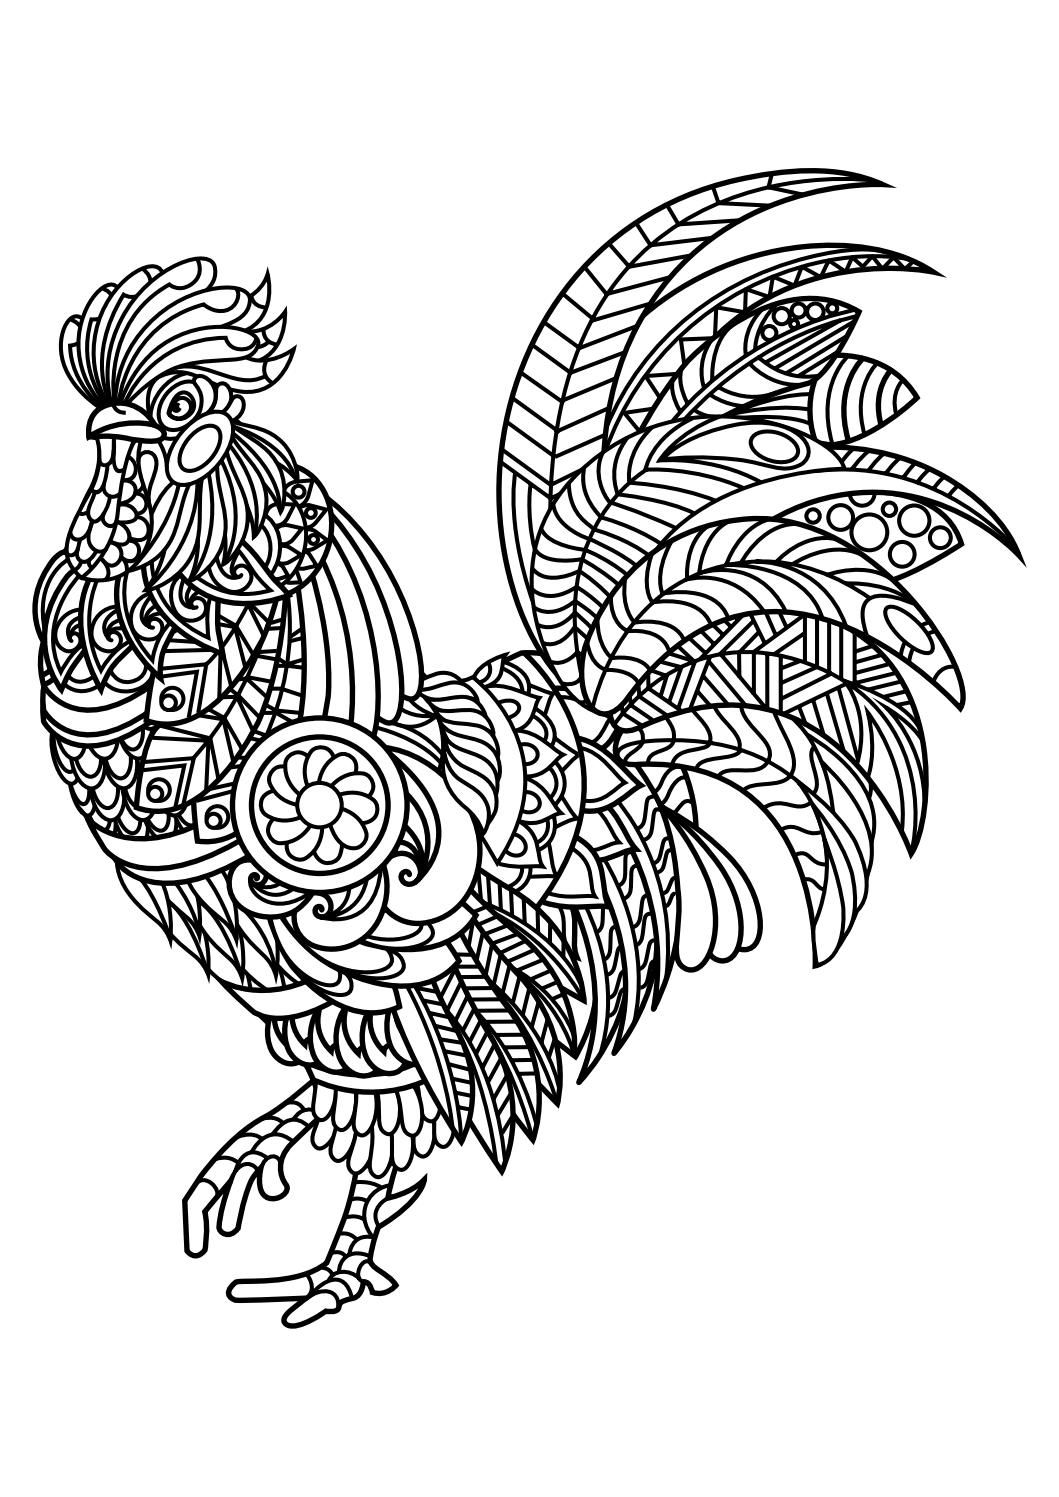 Animal coloring pages pdf   Chicken coloring pages, Bird ...